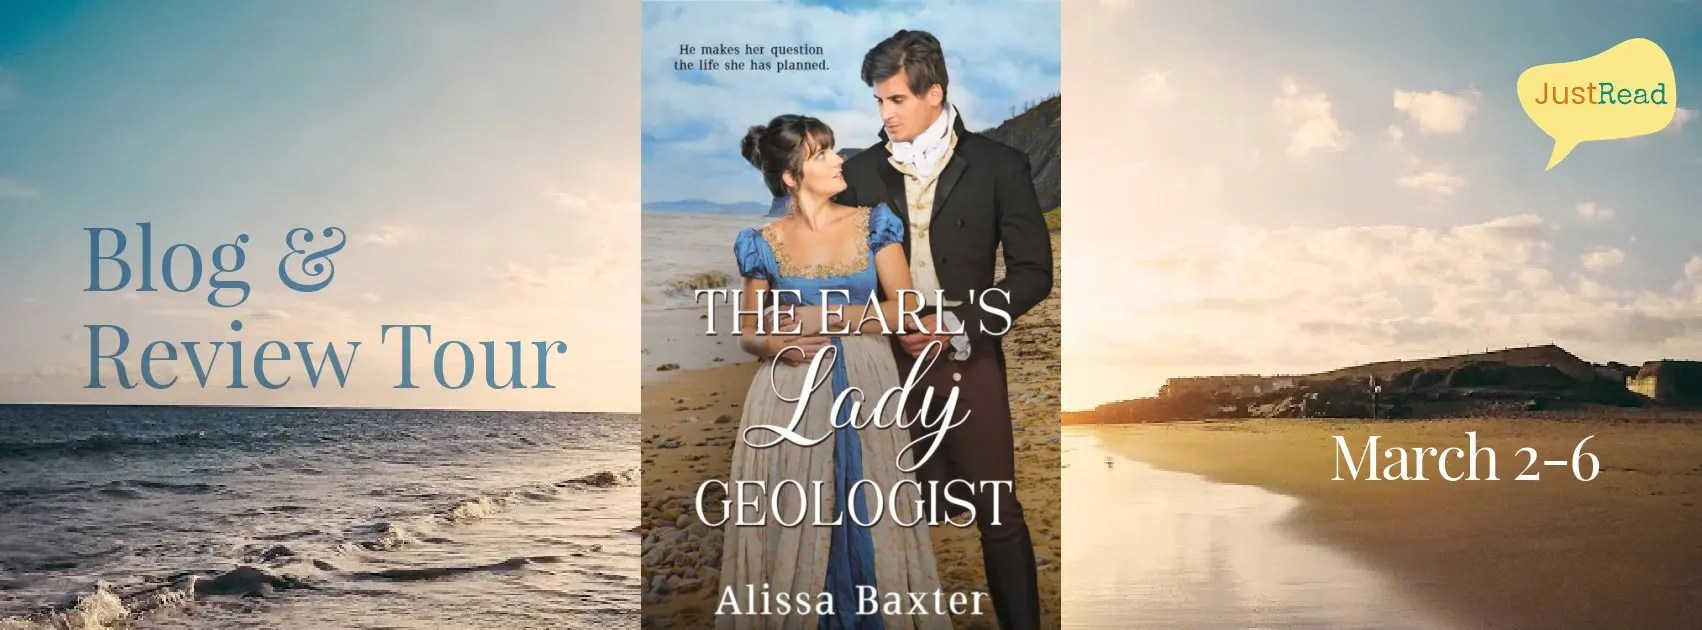 Welcome to The Earl's Lady Geologist Blog + Review Tour & Giveaway!